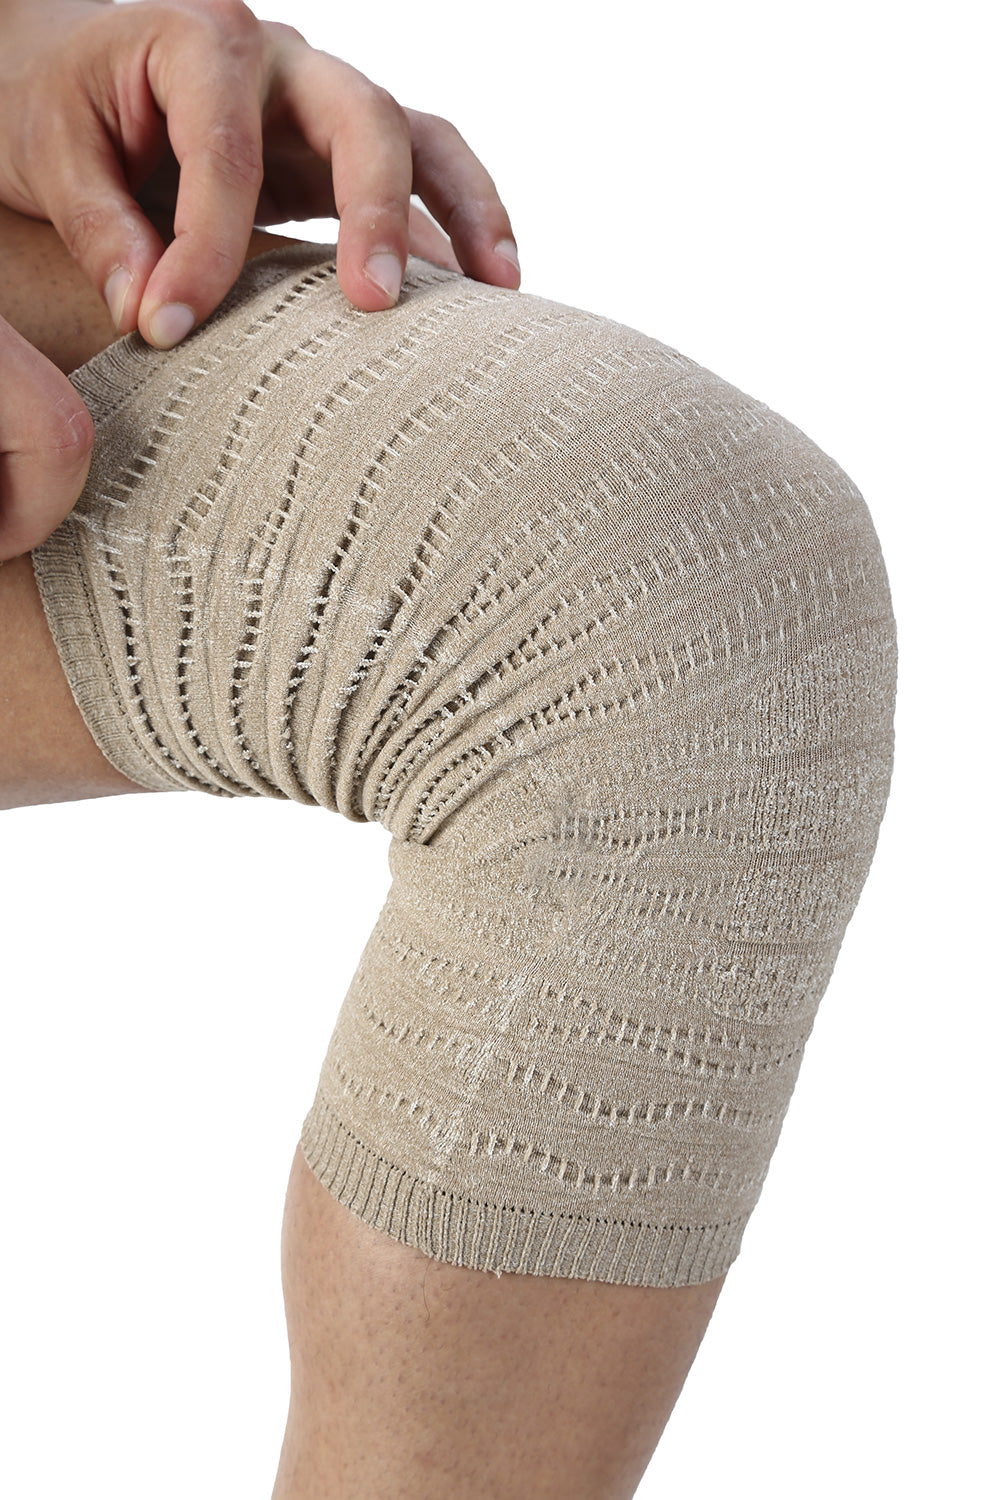 SPIKENERGY KNEE - KOLENO